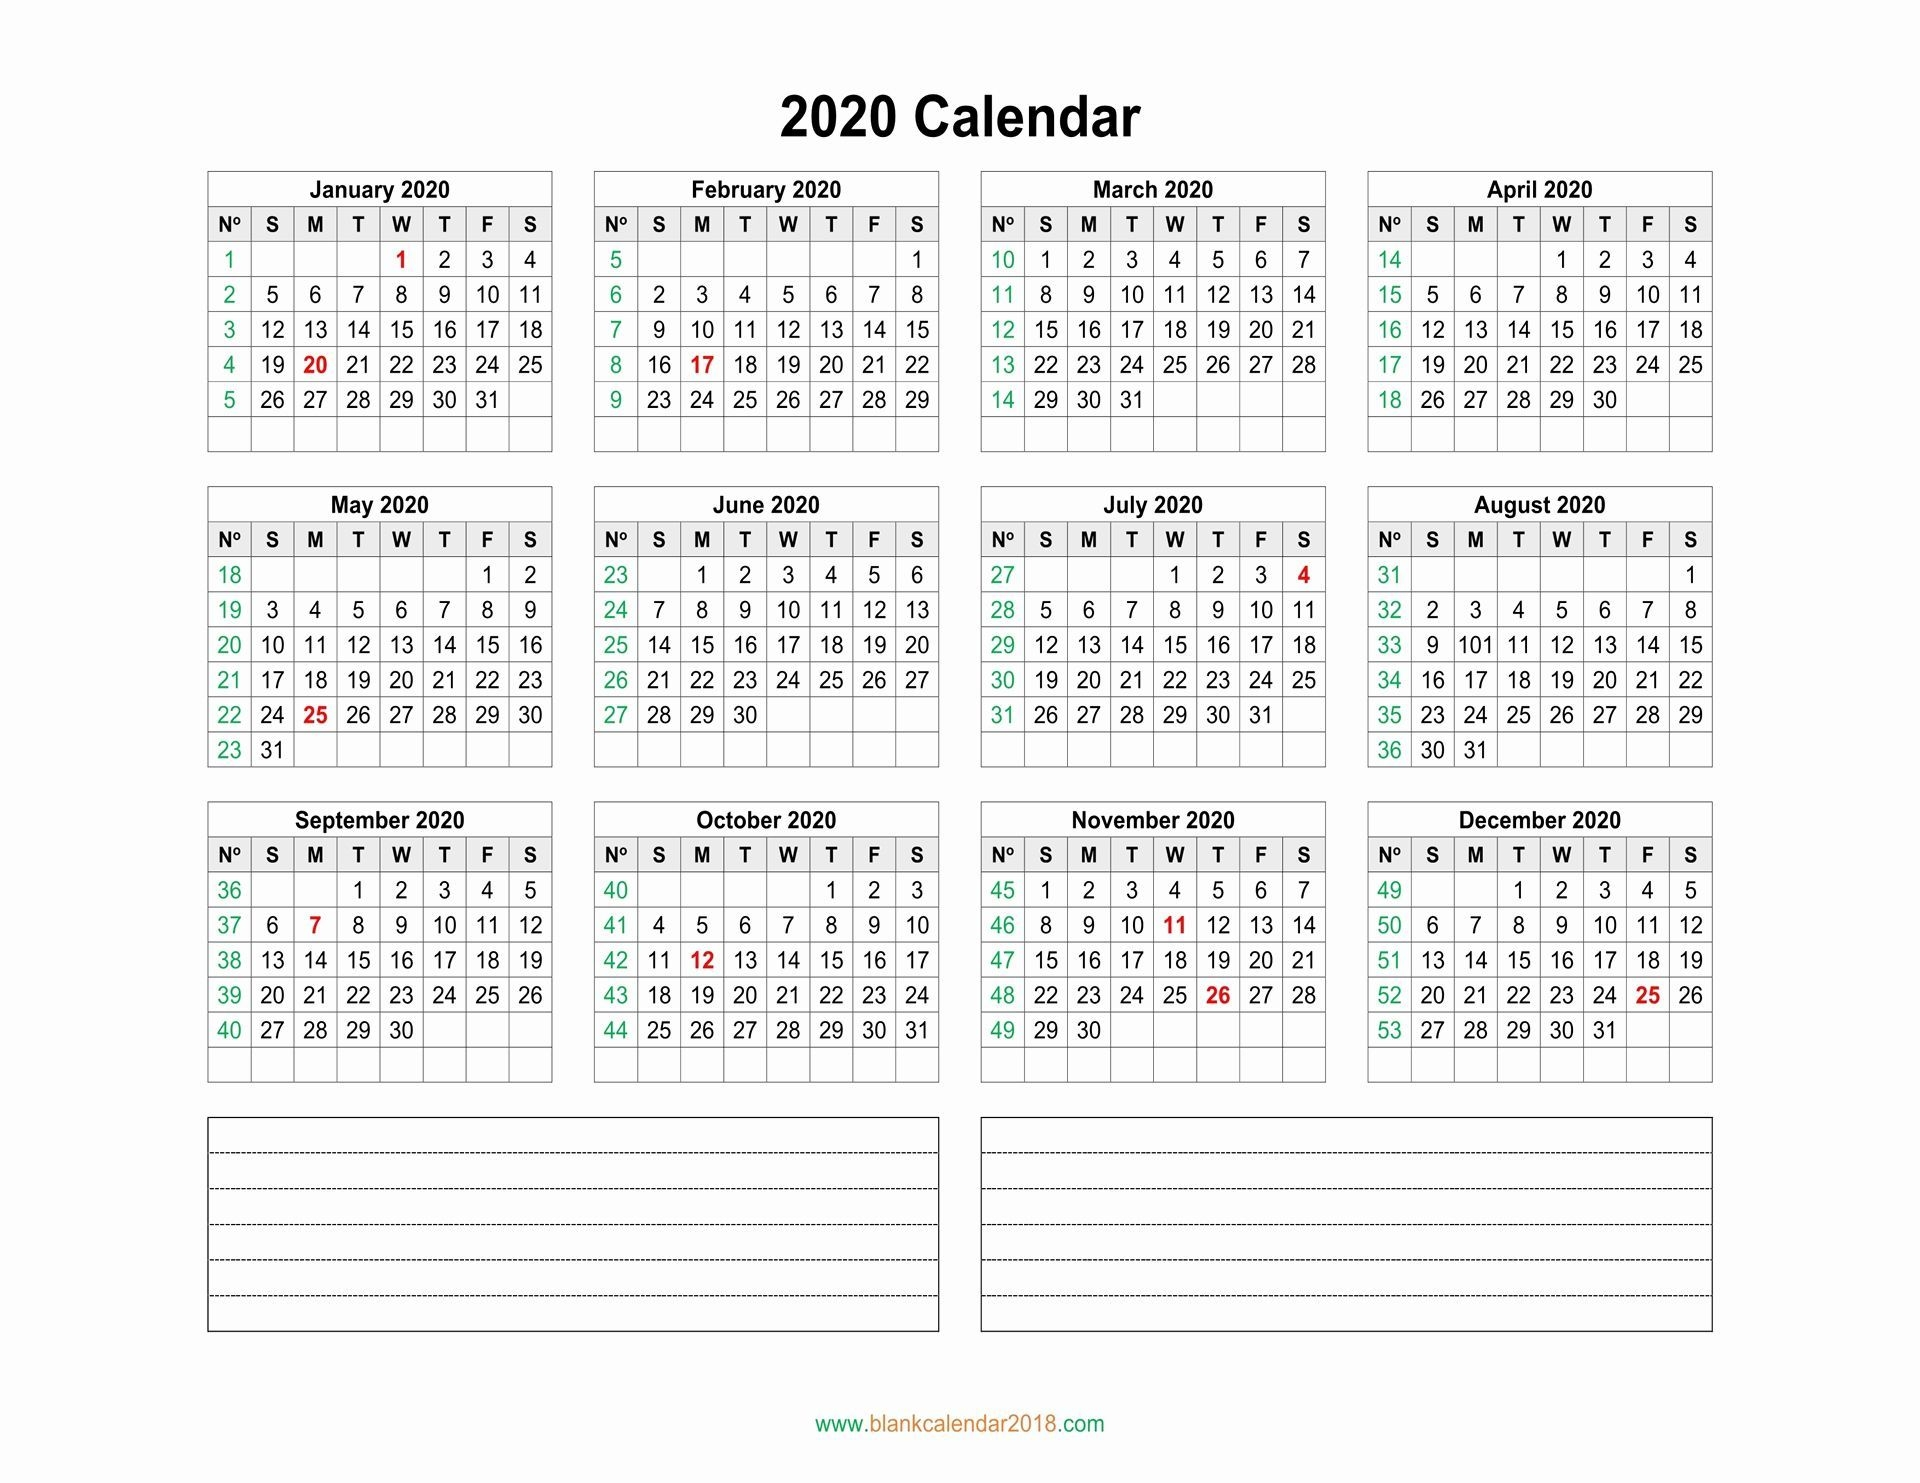 Printable Calendar Without Weekends In 2020 | 2020 Calendar